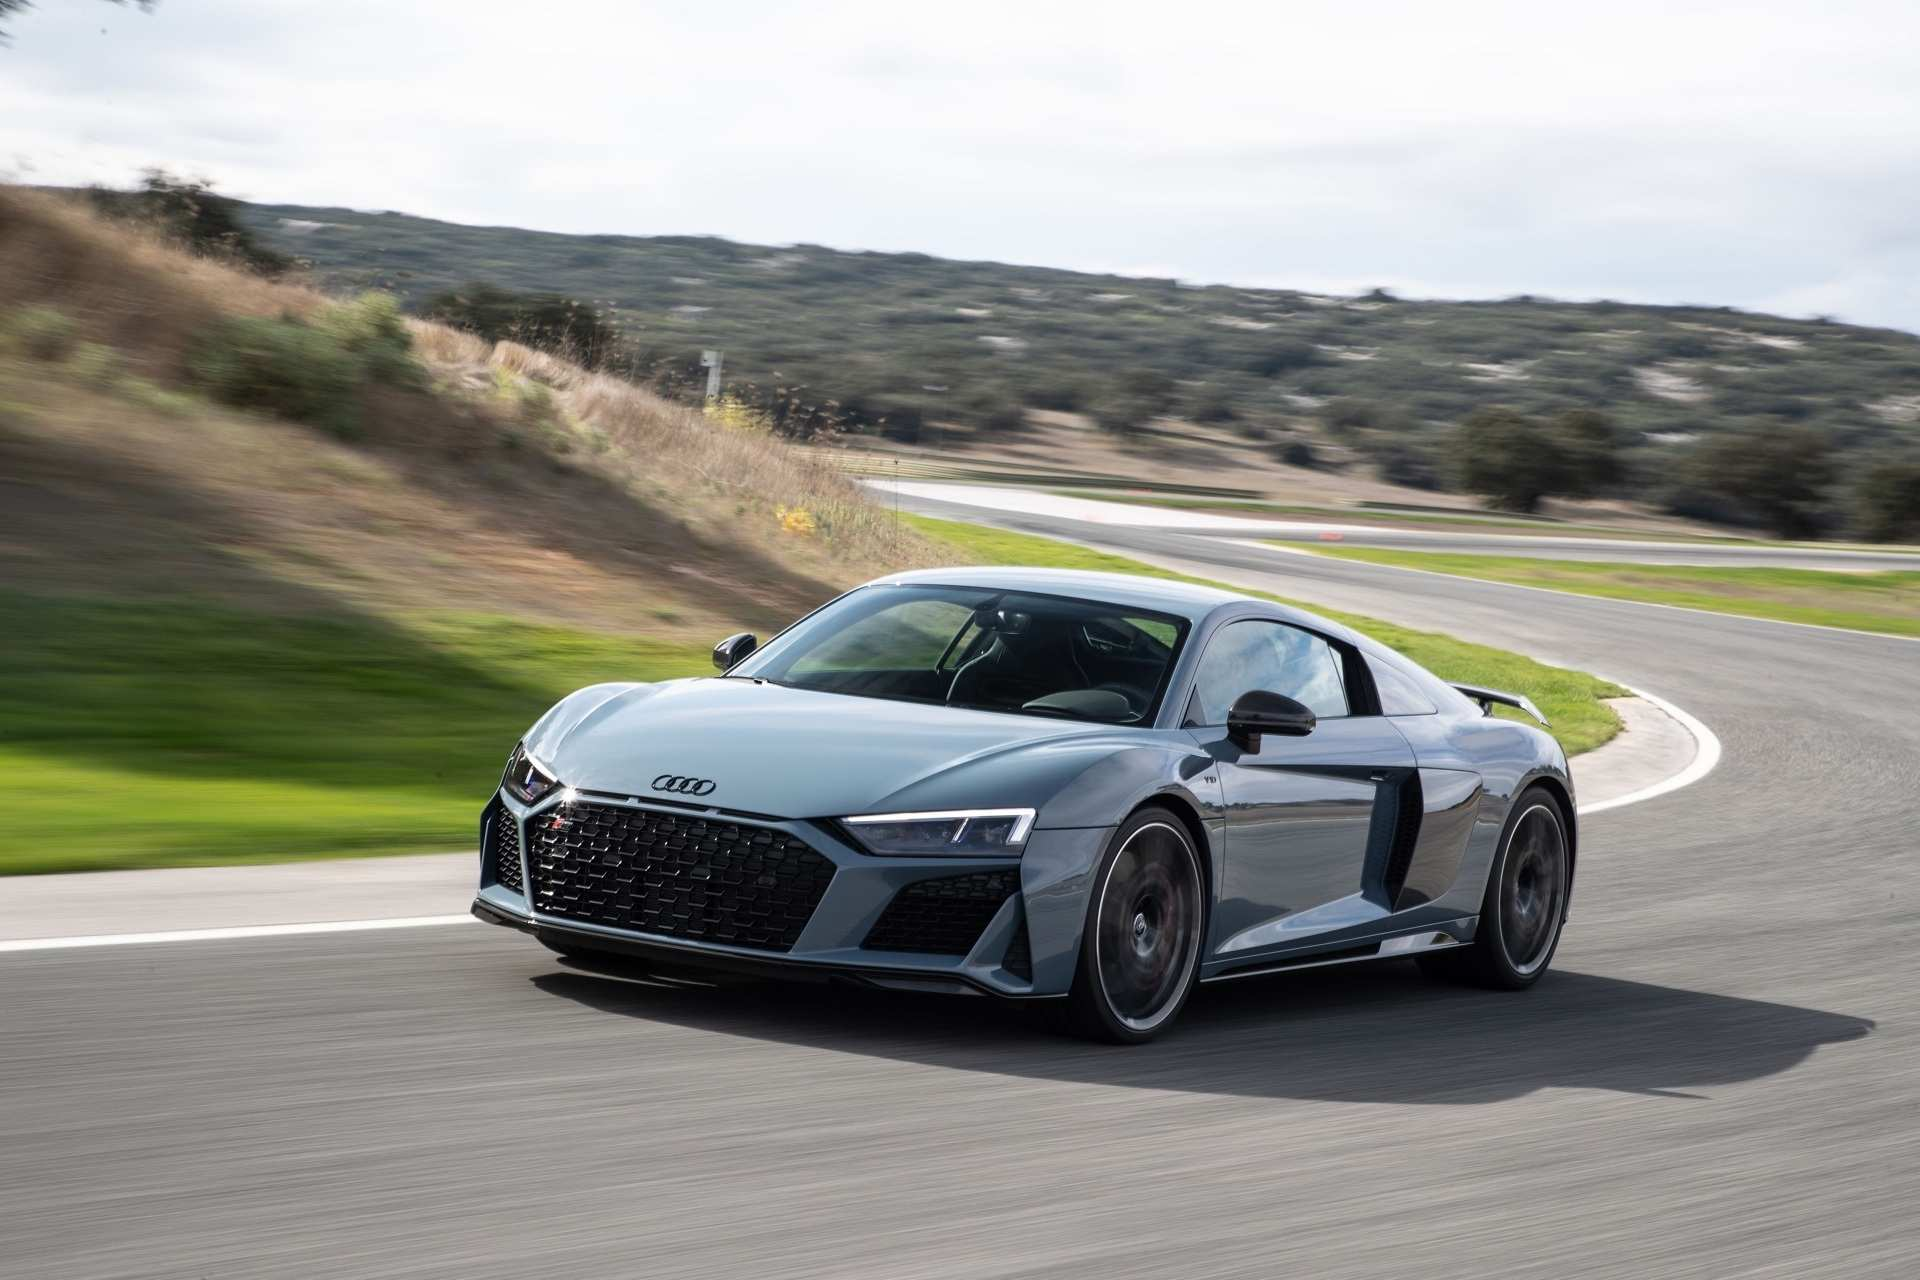 93 A 2019 Audi R8 LMXs Research New